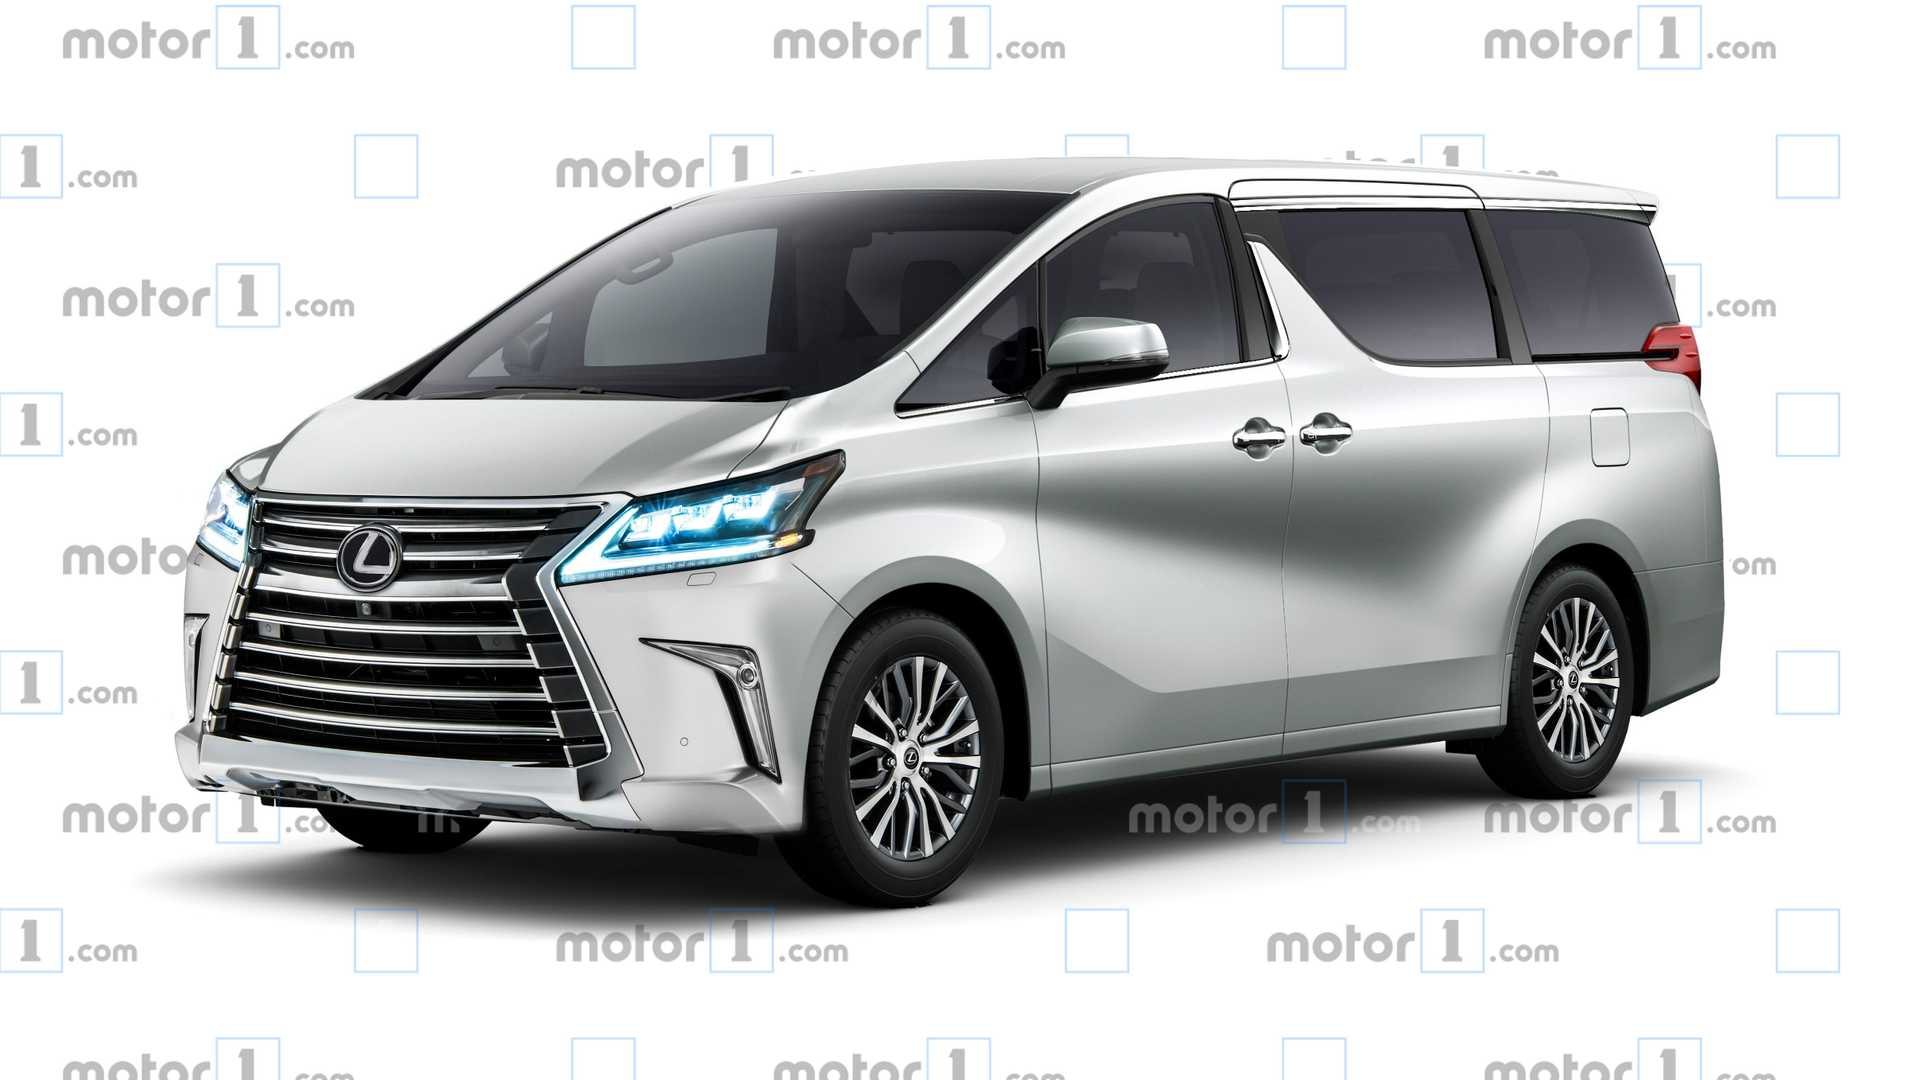 67 All New The 2019 Lexus Minivan New Review Model by The 2019 Lexus Minivan New Review